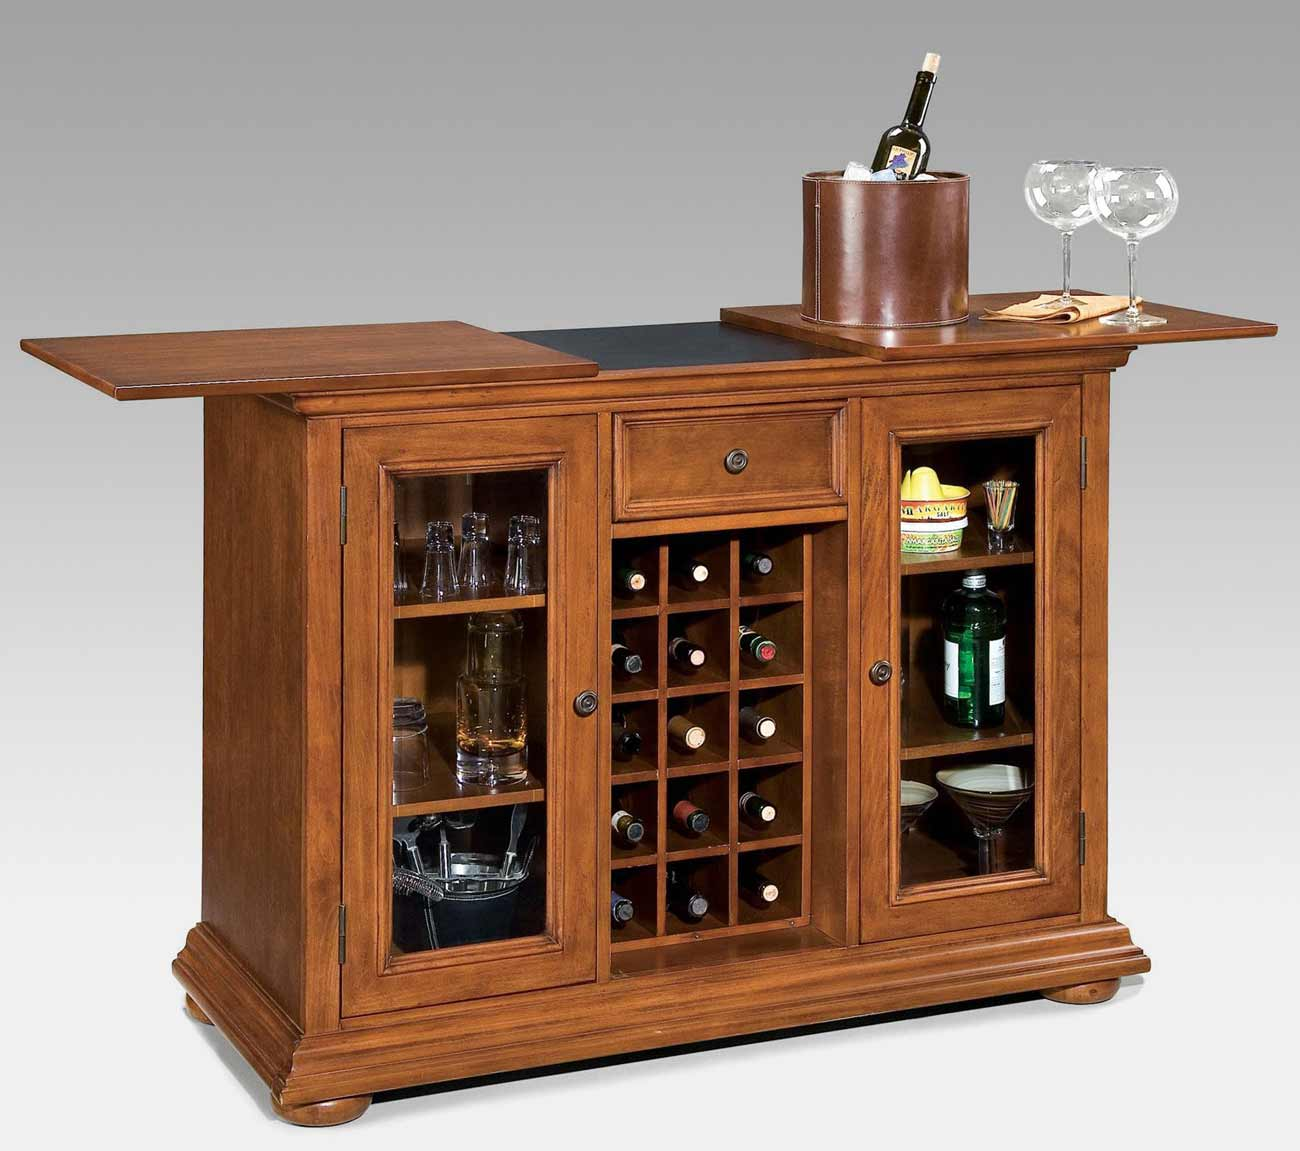 Drinks cabinets on pinterest bar cabinets bar carts and coffee stations Home wine bar furniture